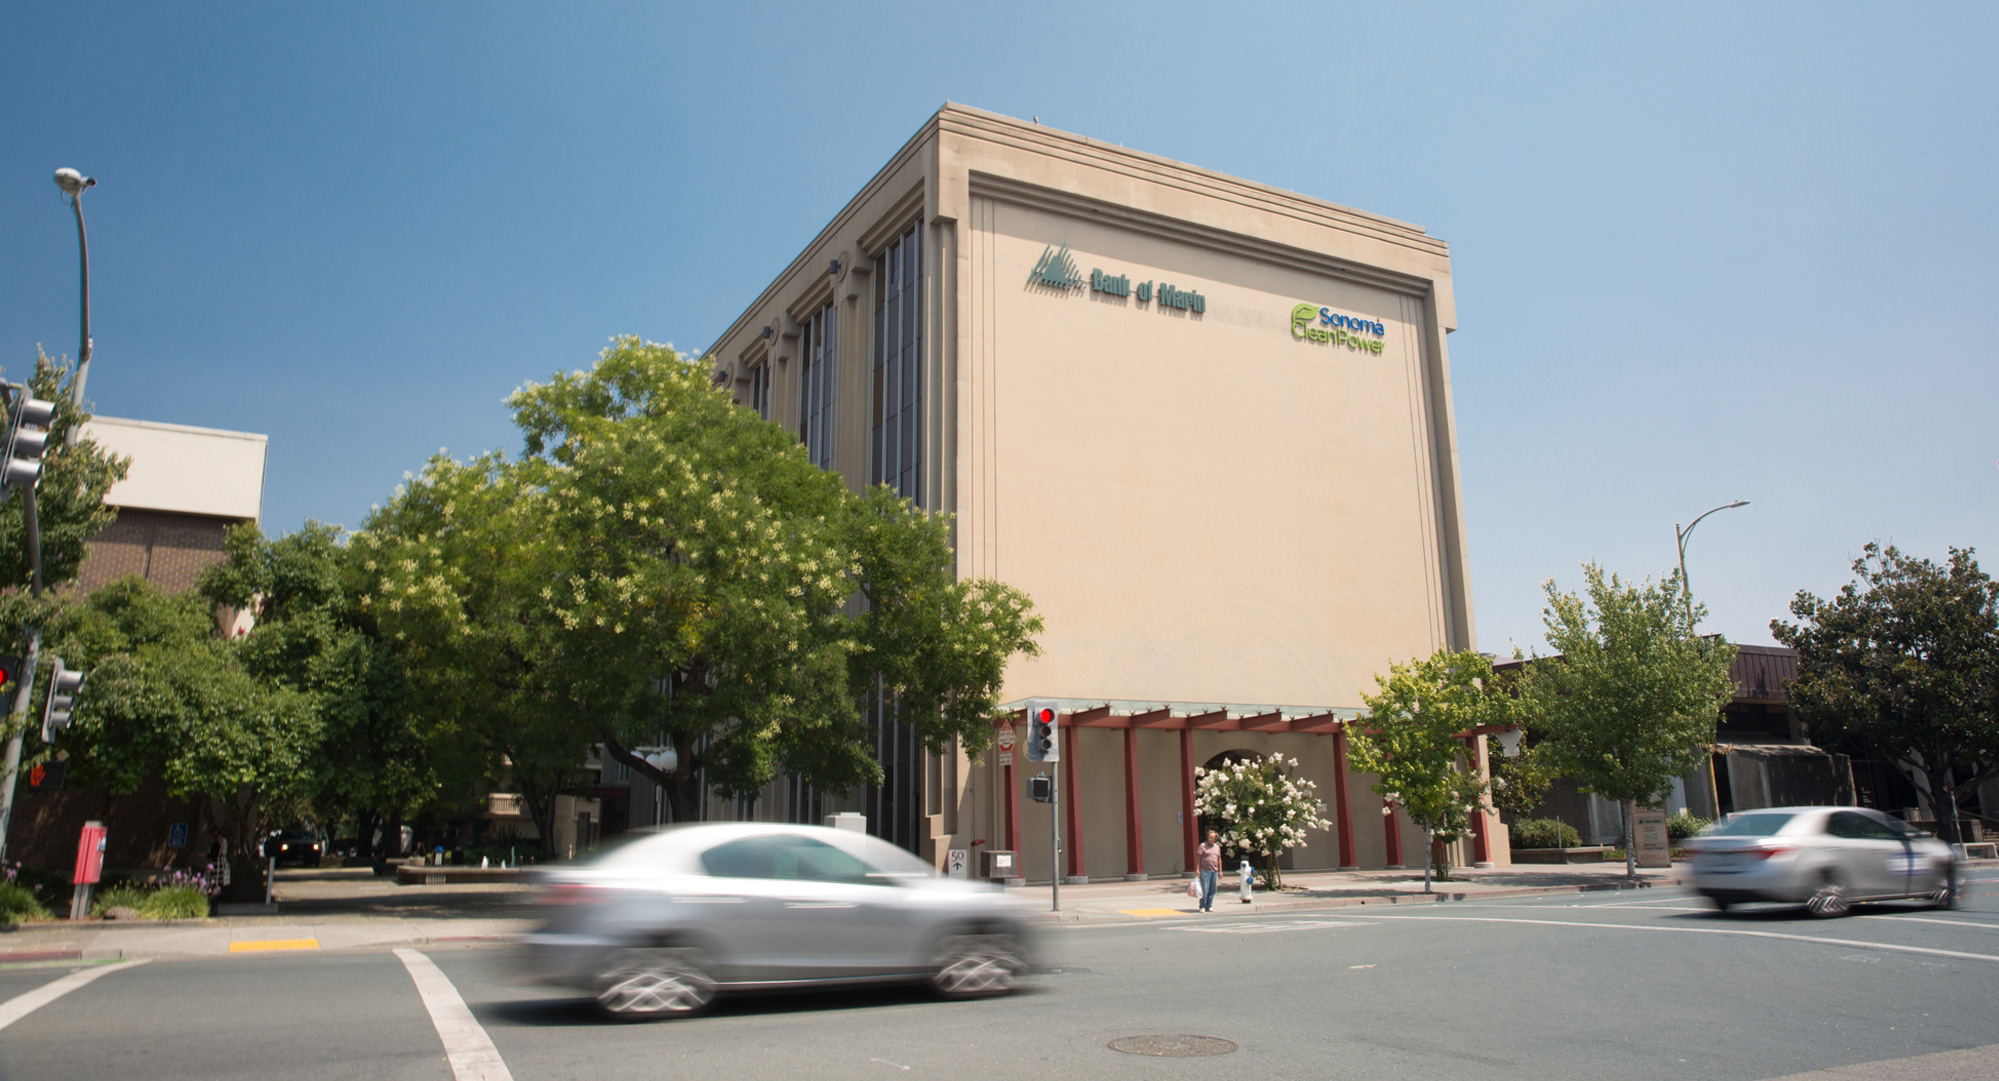 Shot of Santa Rosa Avenue with Doug Shureen's building in the background